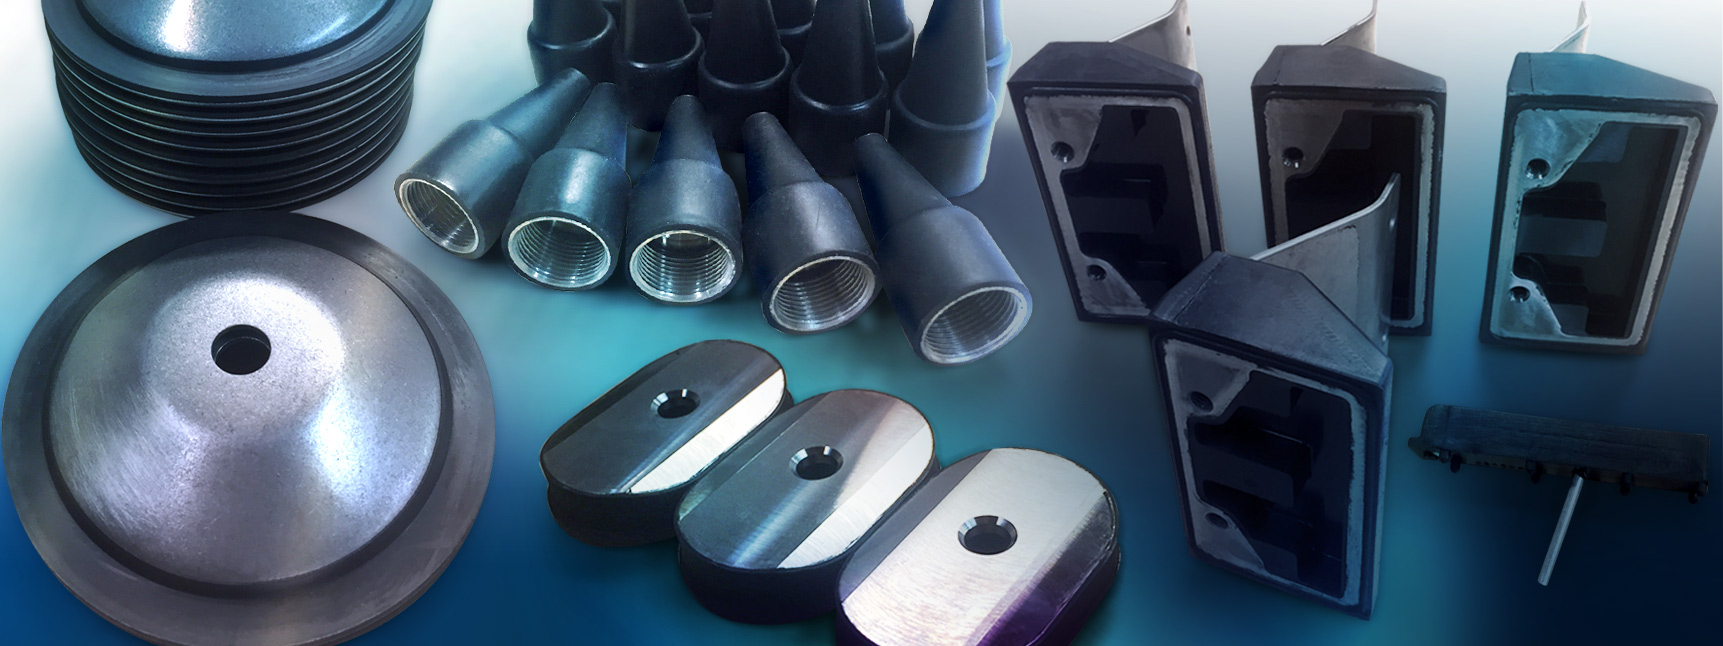 Leading Manufacturer of Custom Rubber Components since 1911.